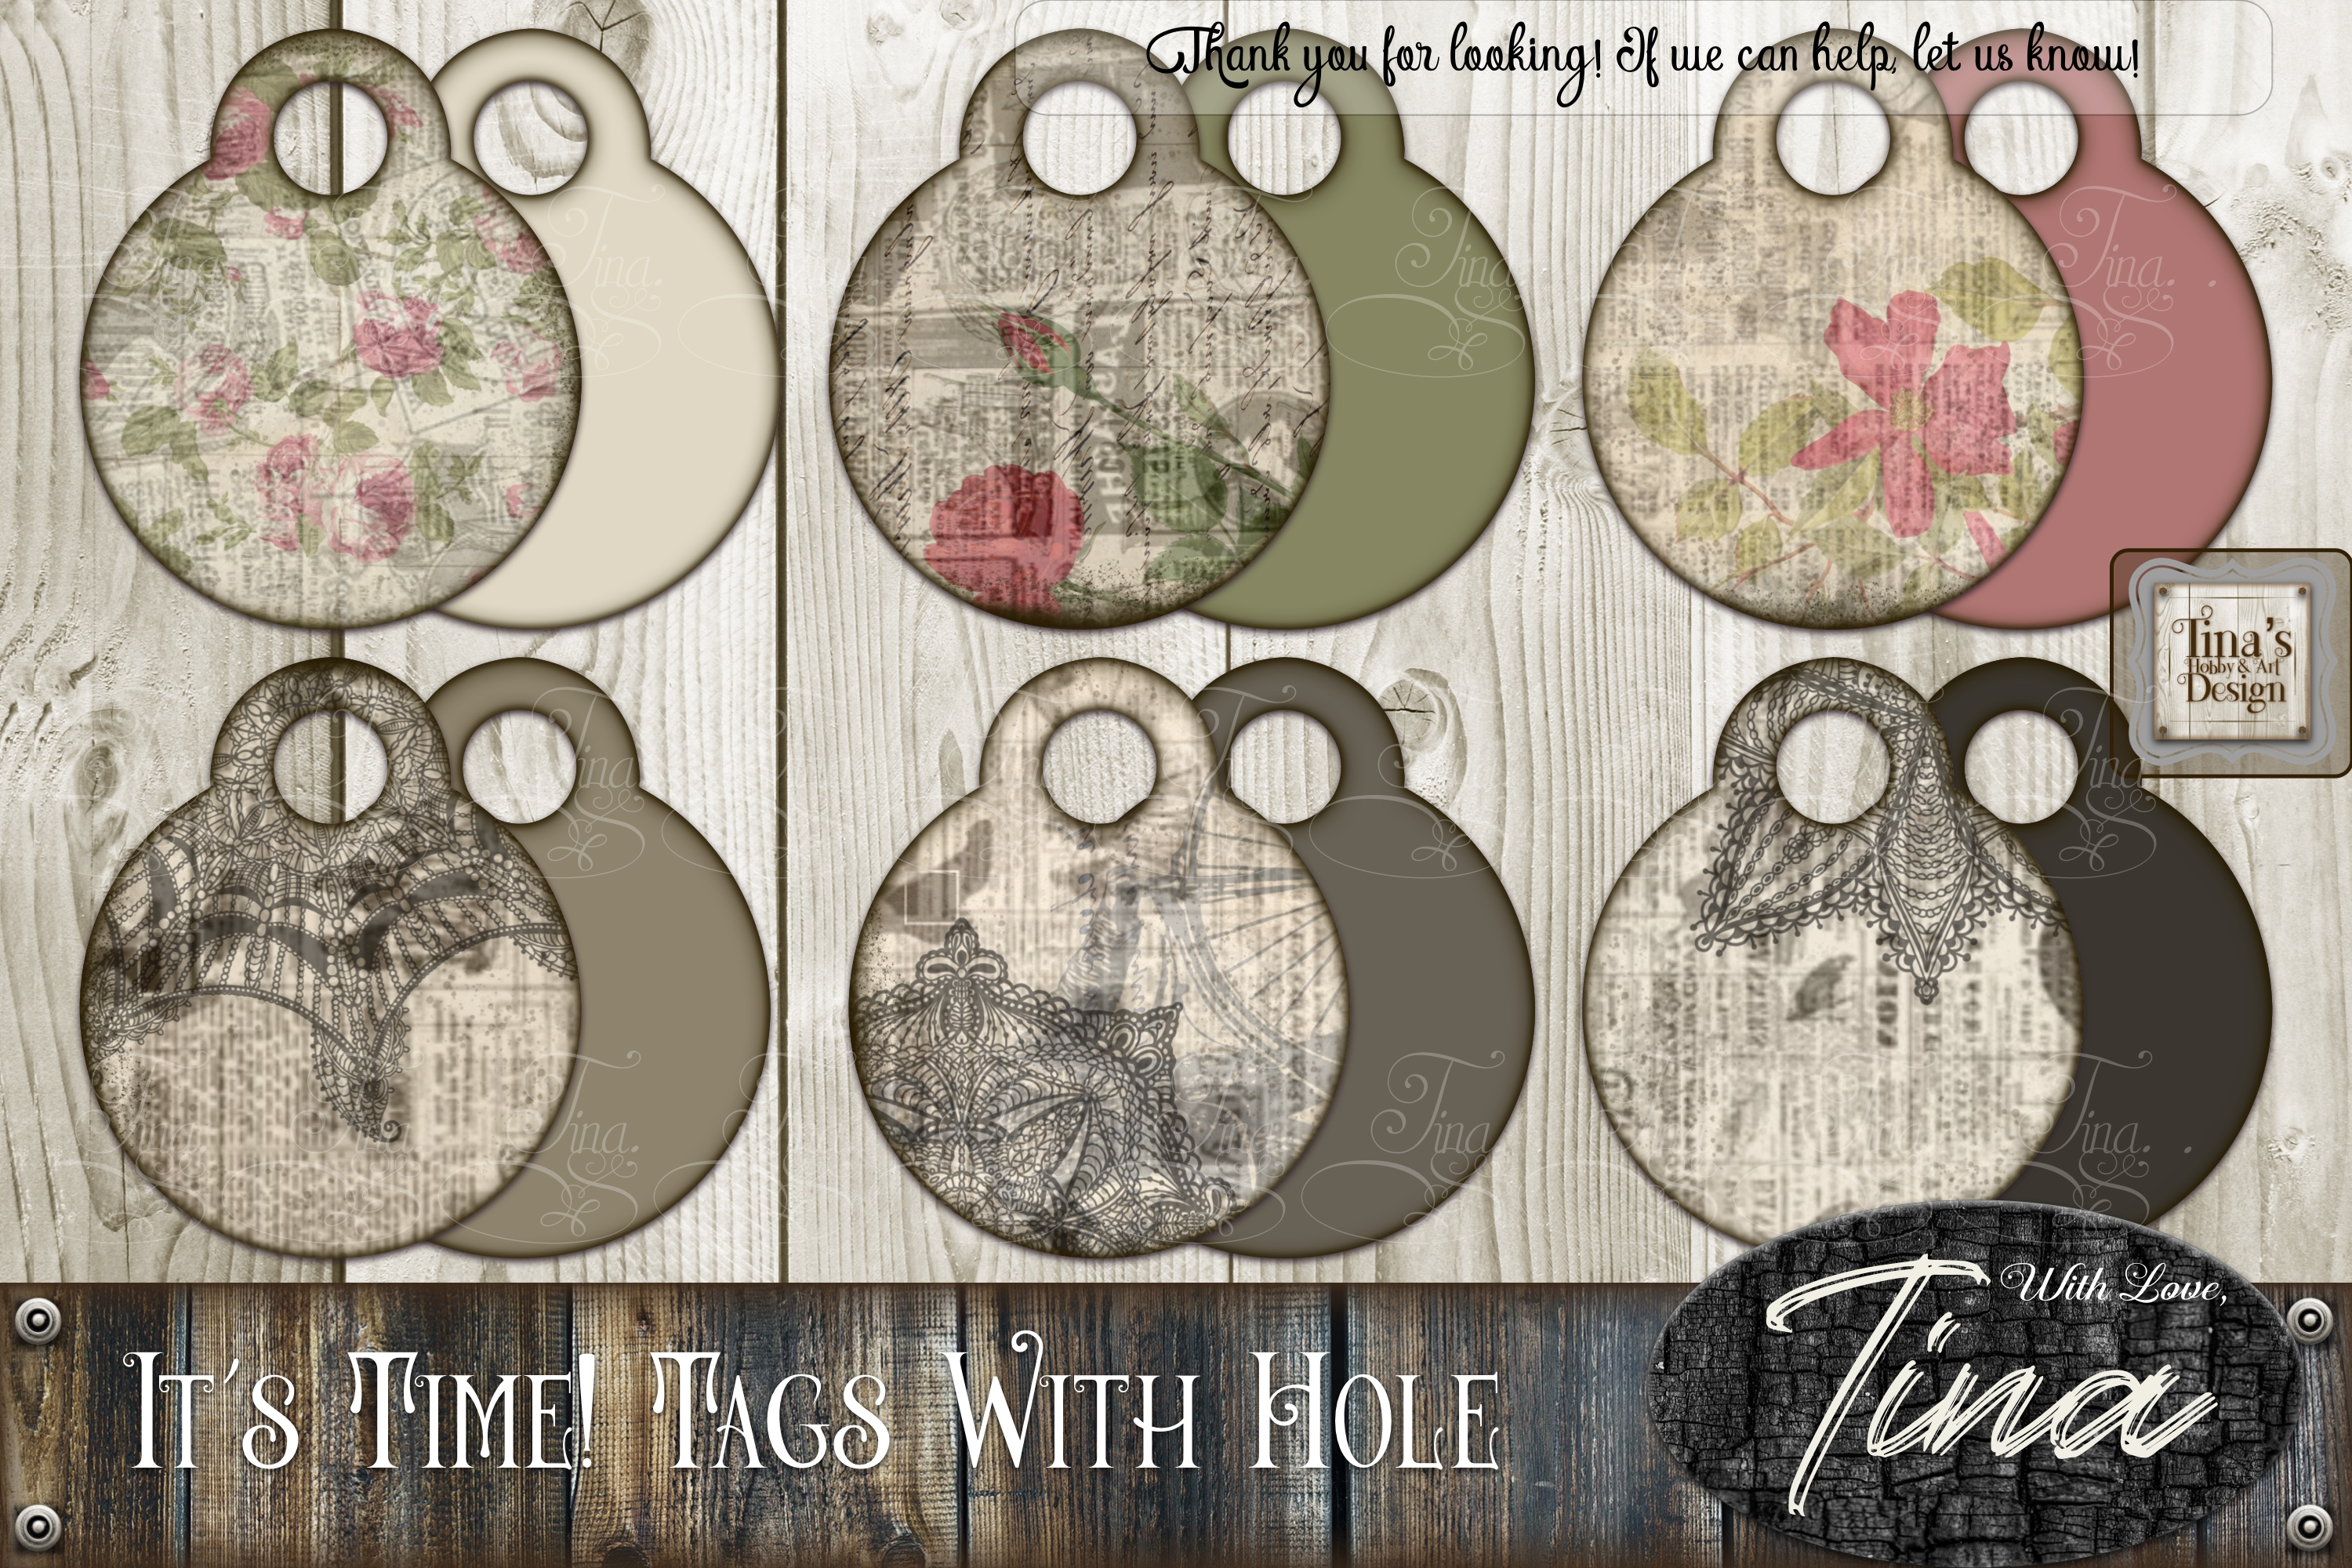 It's Time Newsprint Roses Lace Doily Tags example image 1